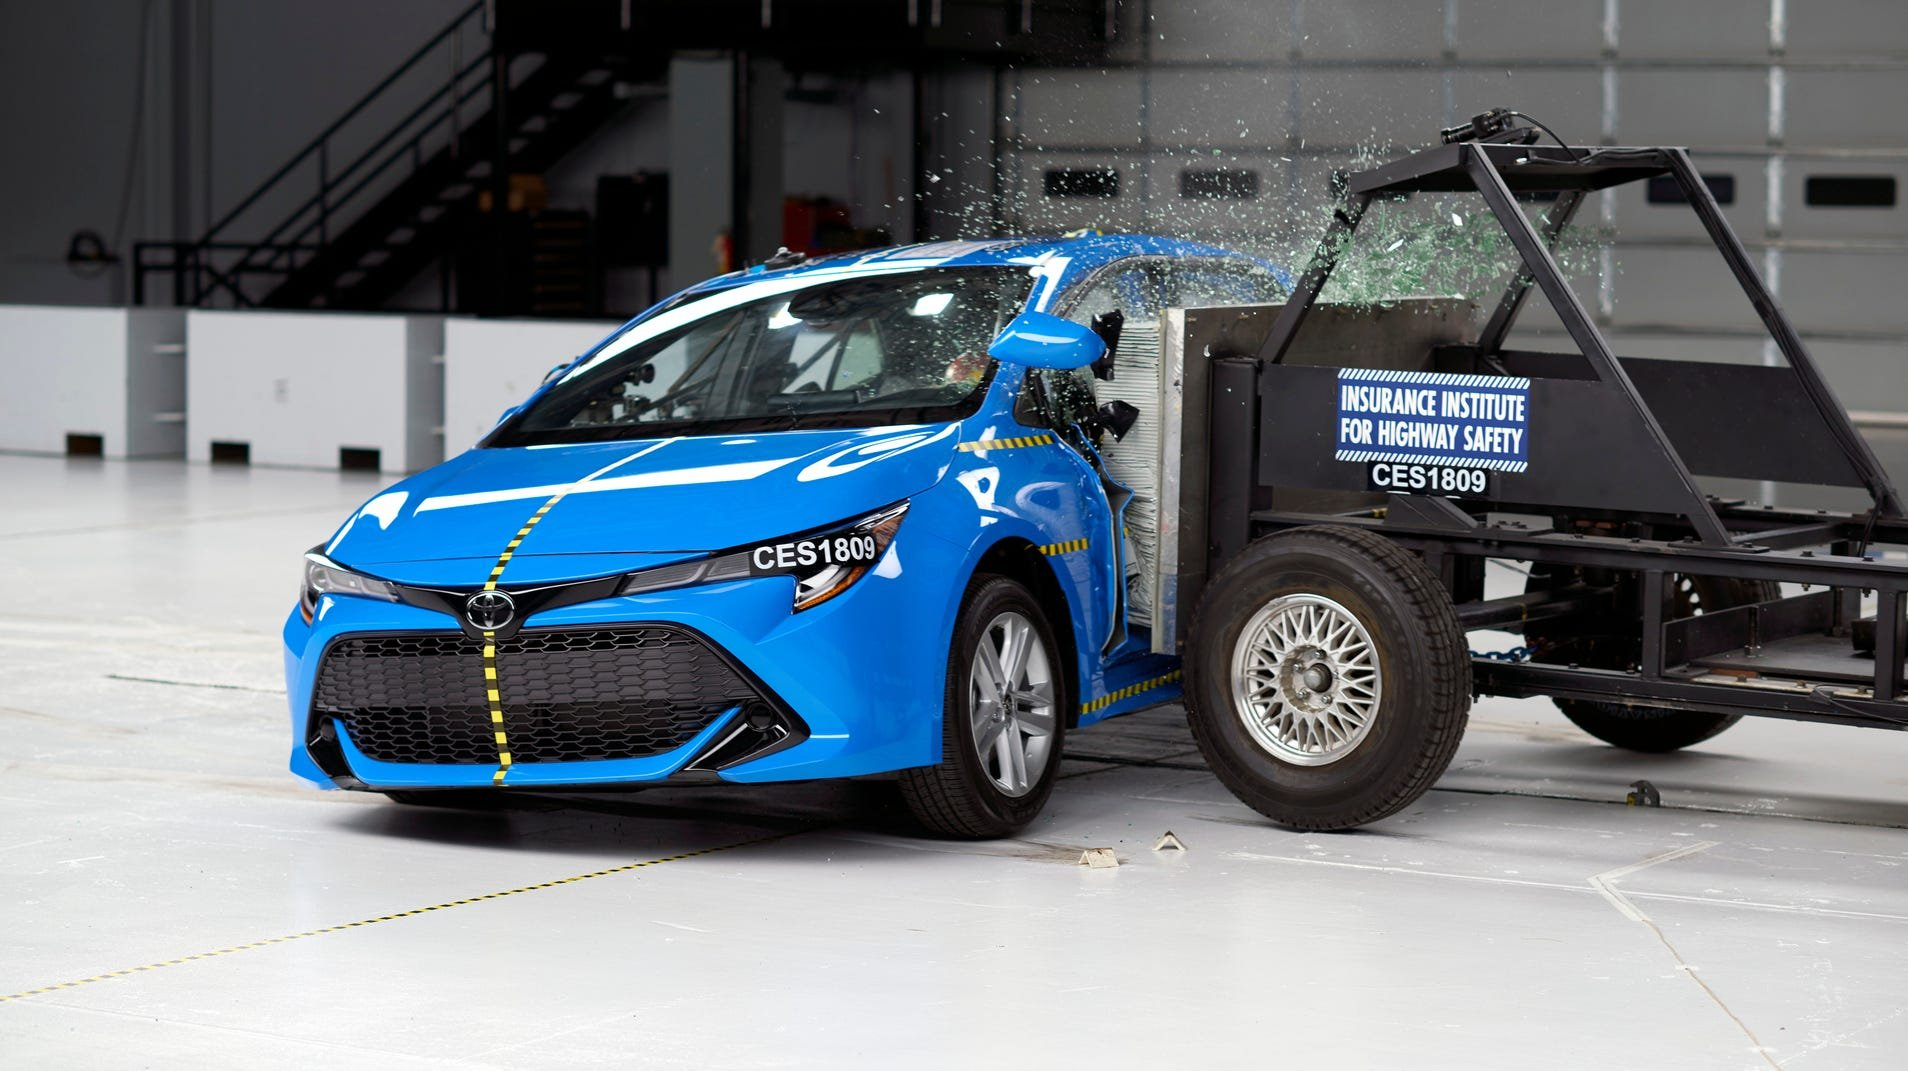 The redesigned 2019 Toyota Corolla hatch, which is a Top Safety Pick with certain headlights.